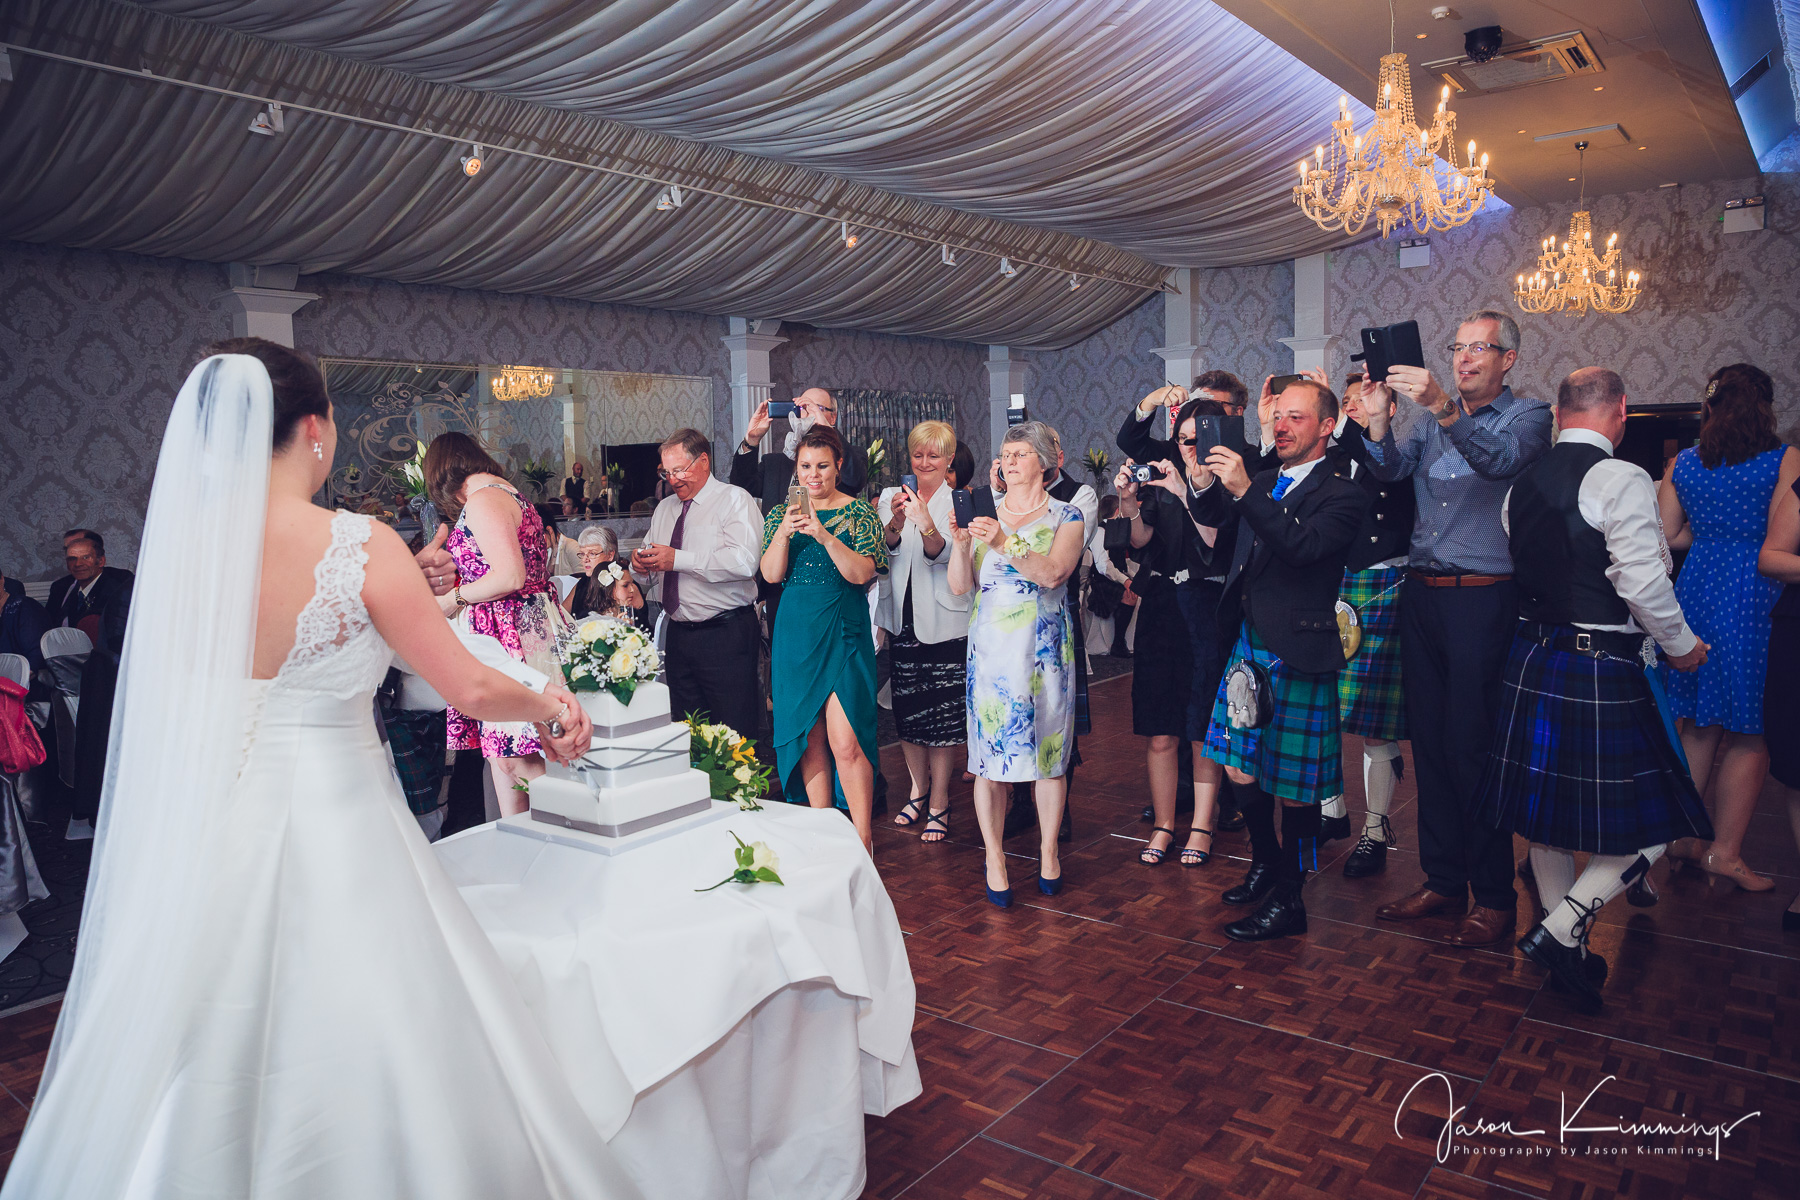 keavil-house-wedding-photography-48.jpg